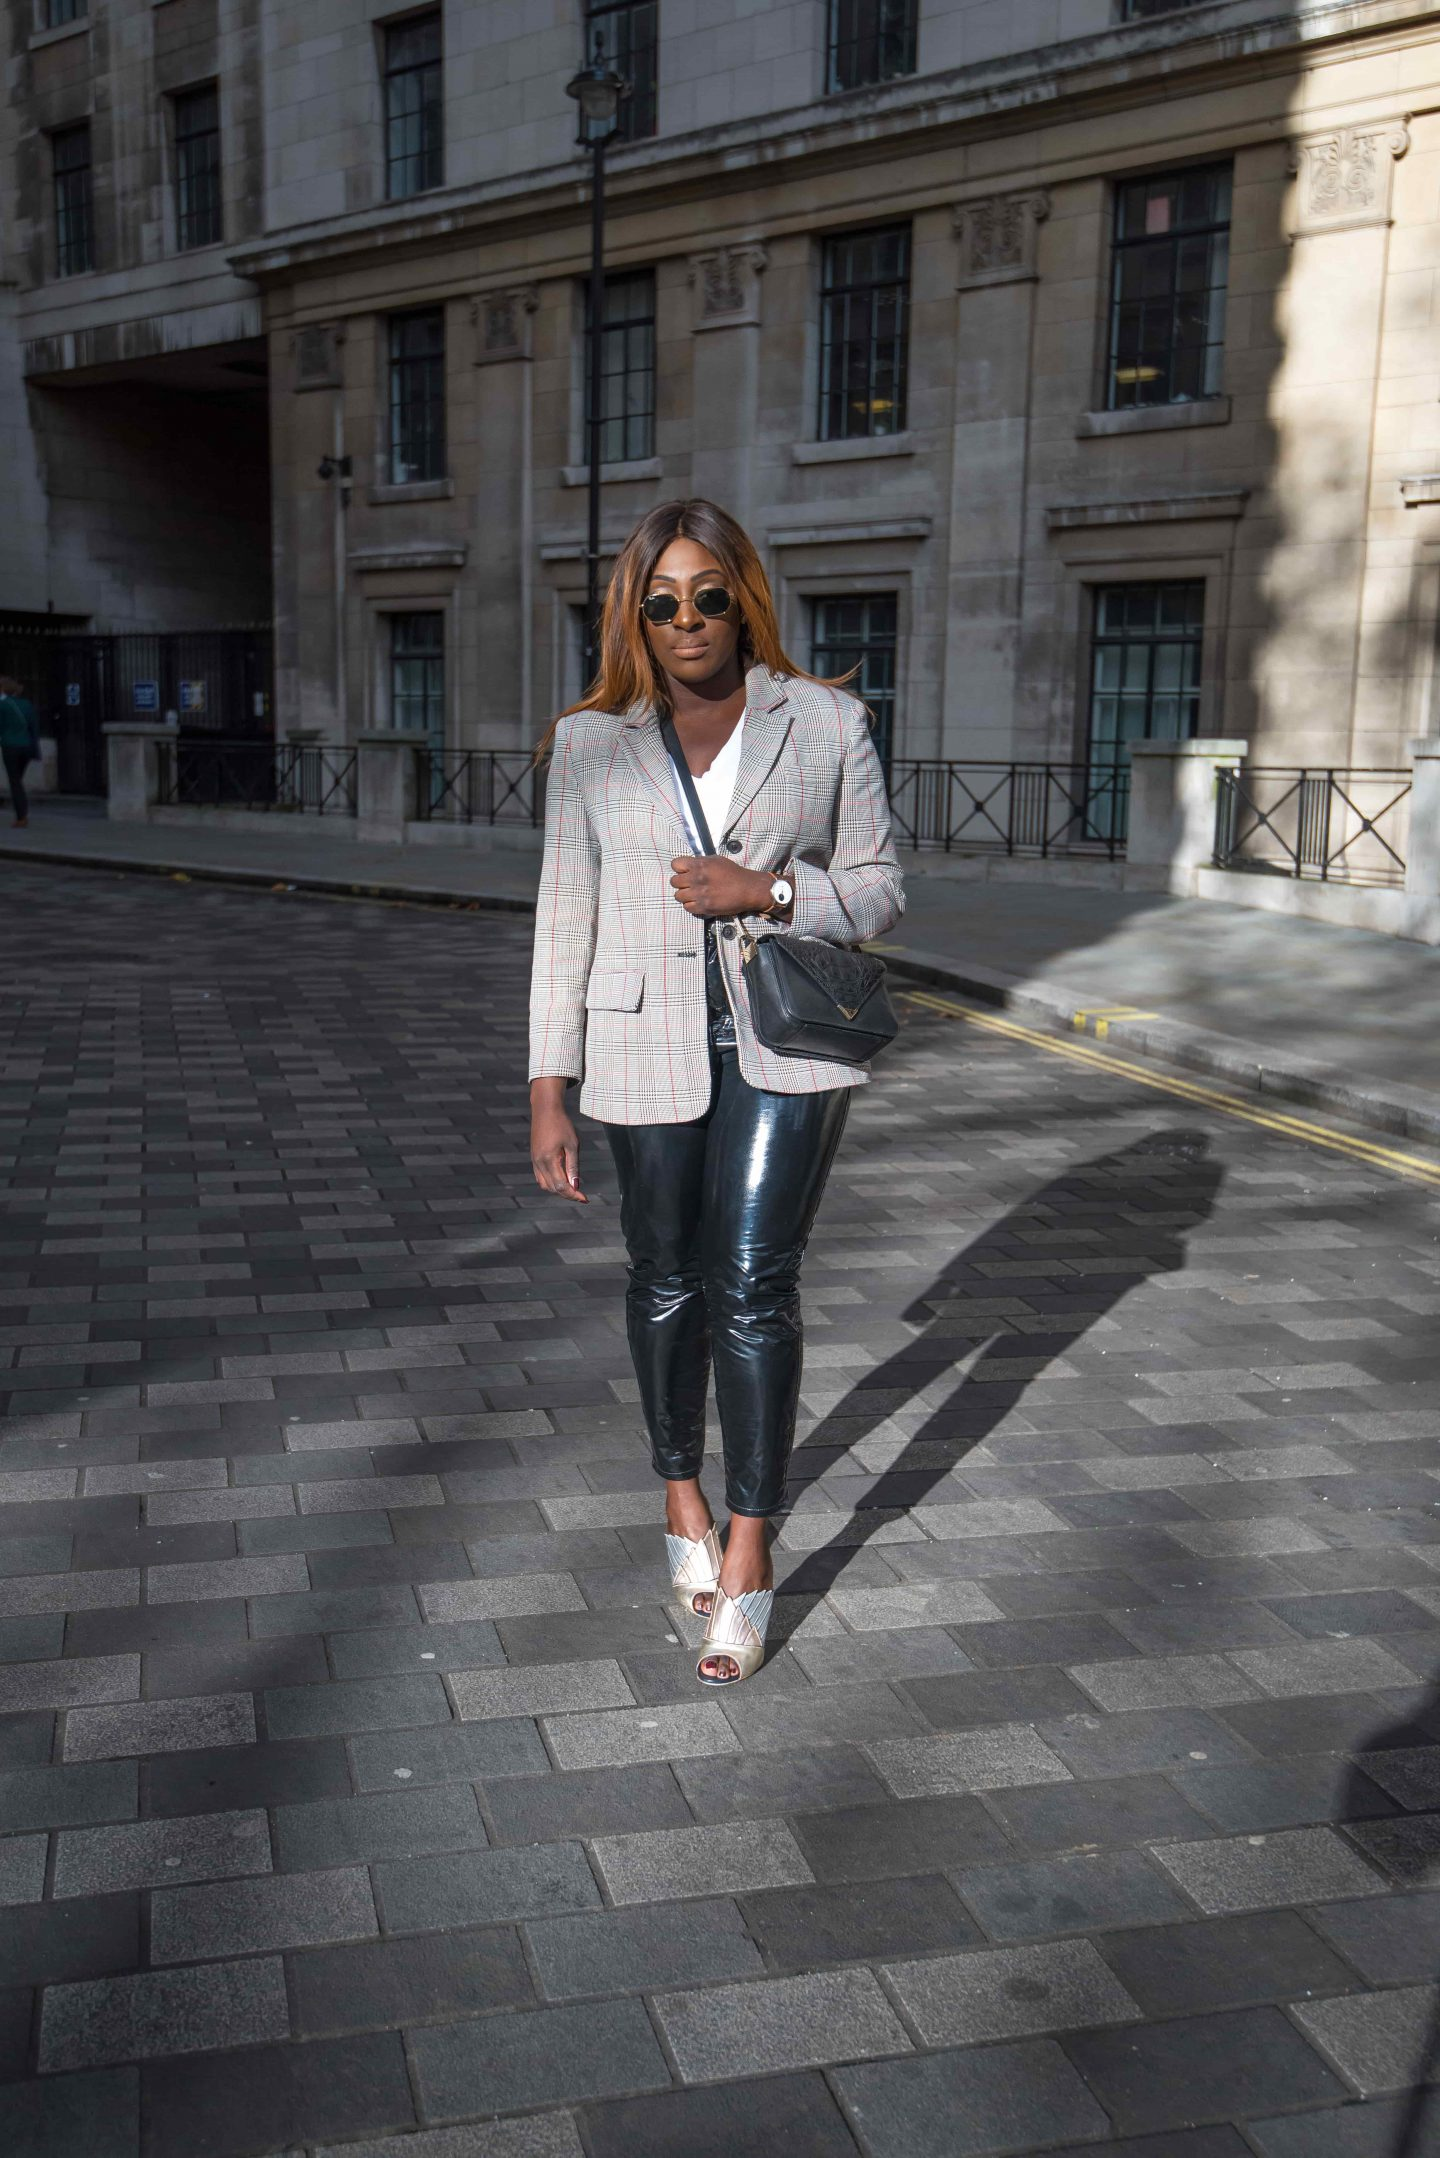 Autumn Workwear & The Vinyl Affect 1 - Zara check blazer - Alexander Wang Bag - vinyl trousers - malone soulier mules - Style and the Sass